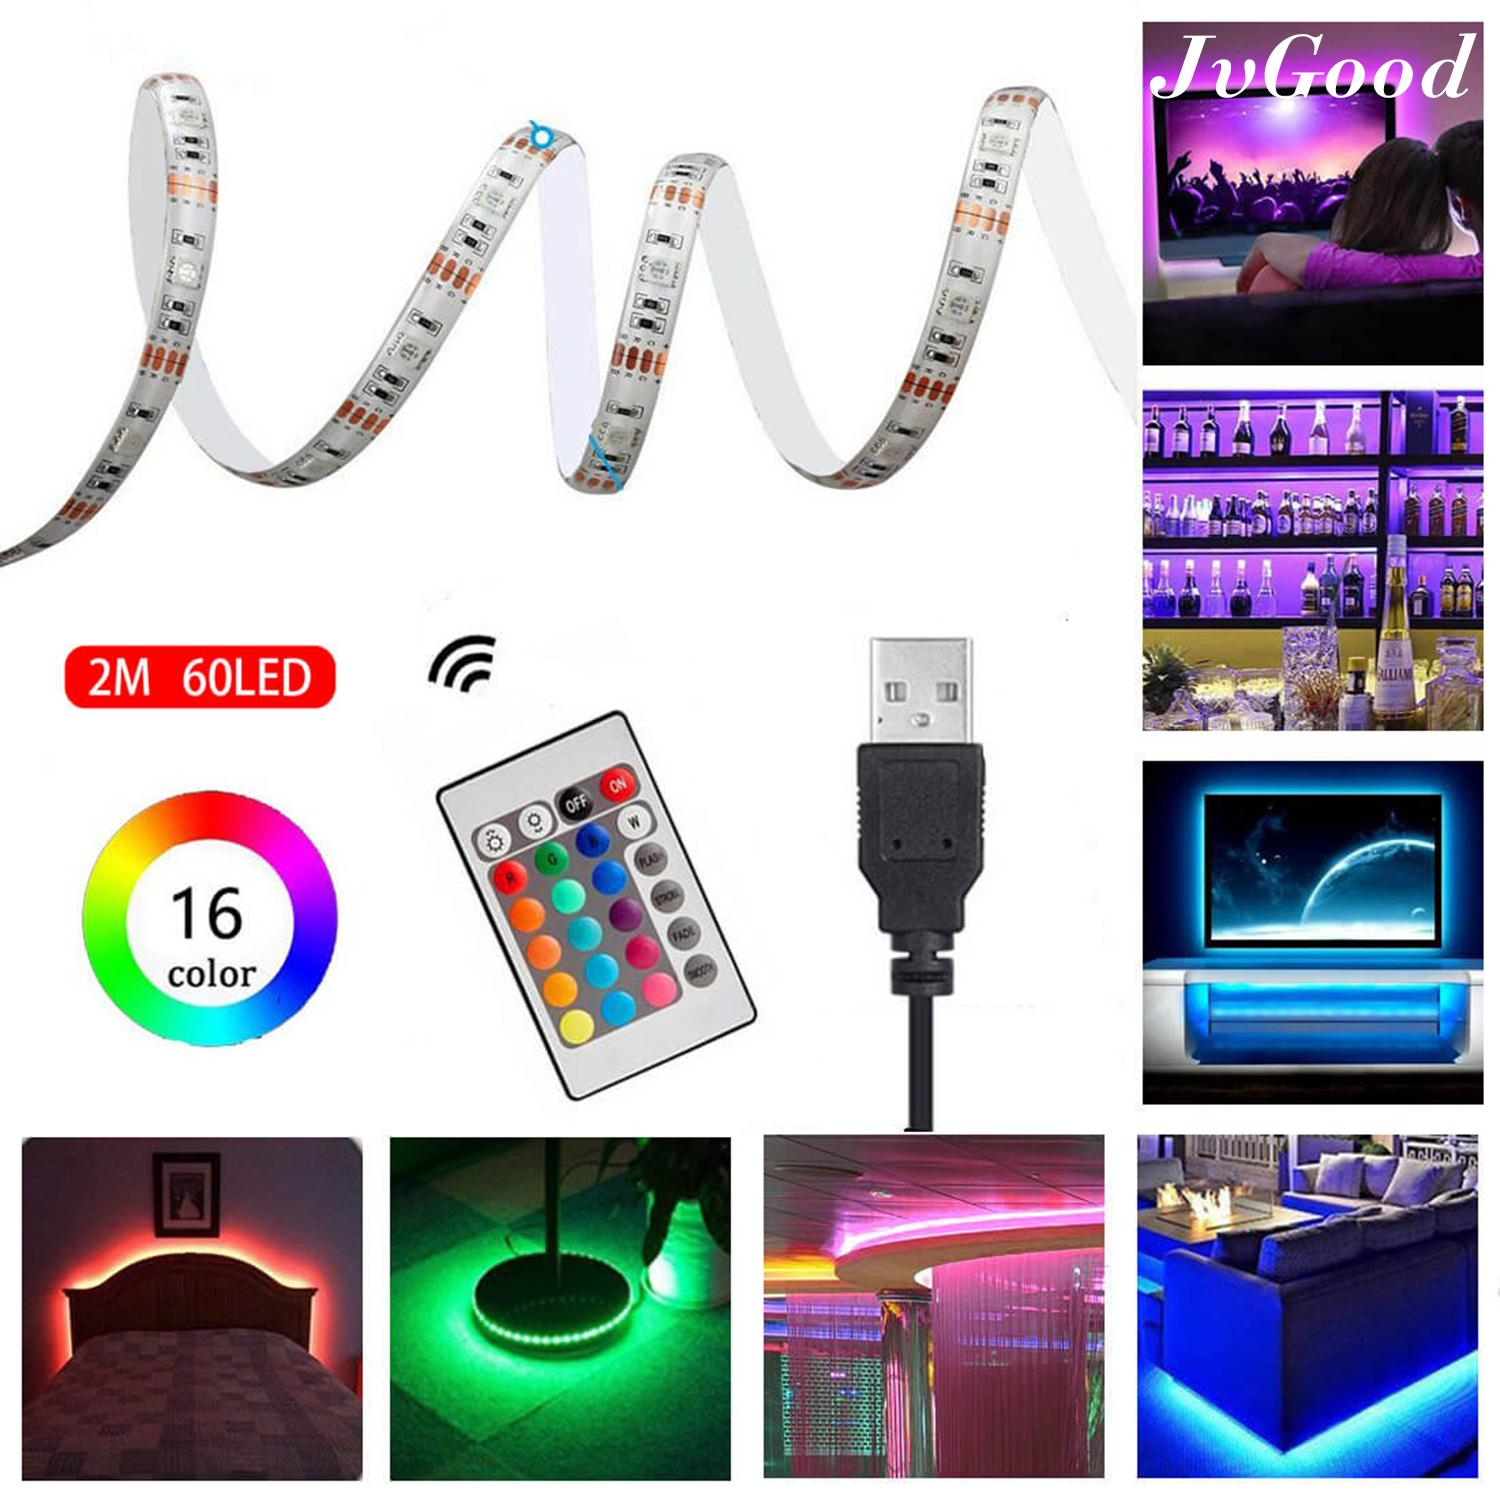 Led Lighting For Sale Lamps Prices Brands Review In Digital Rgb Weatherproof Strip 60 1m Jvgood Waterproof Tv Backlight 5050 Changing Color Kit Usb Power